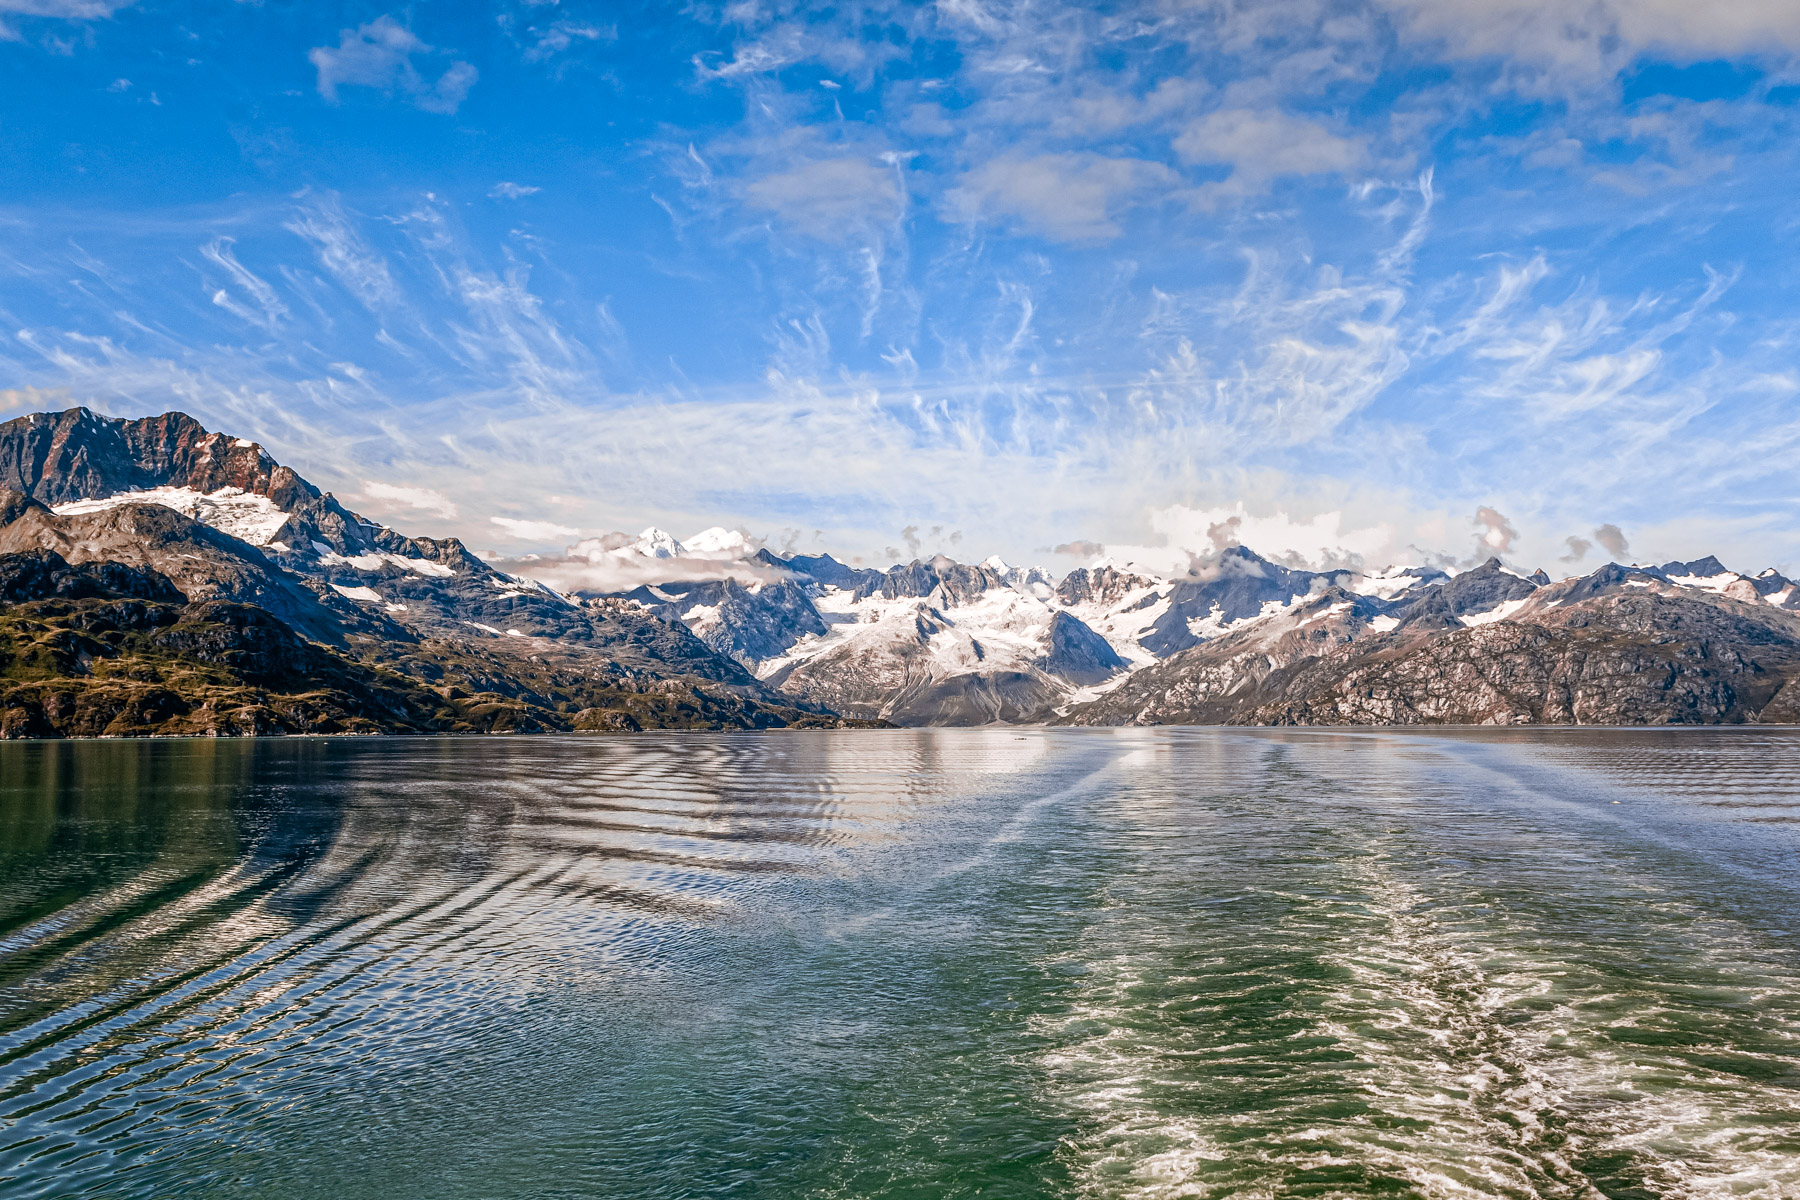 Mountains along the shore of Alaska's Glacier Bay.